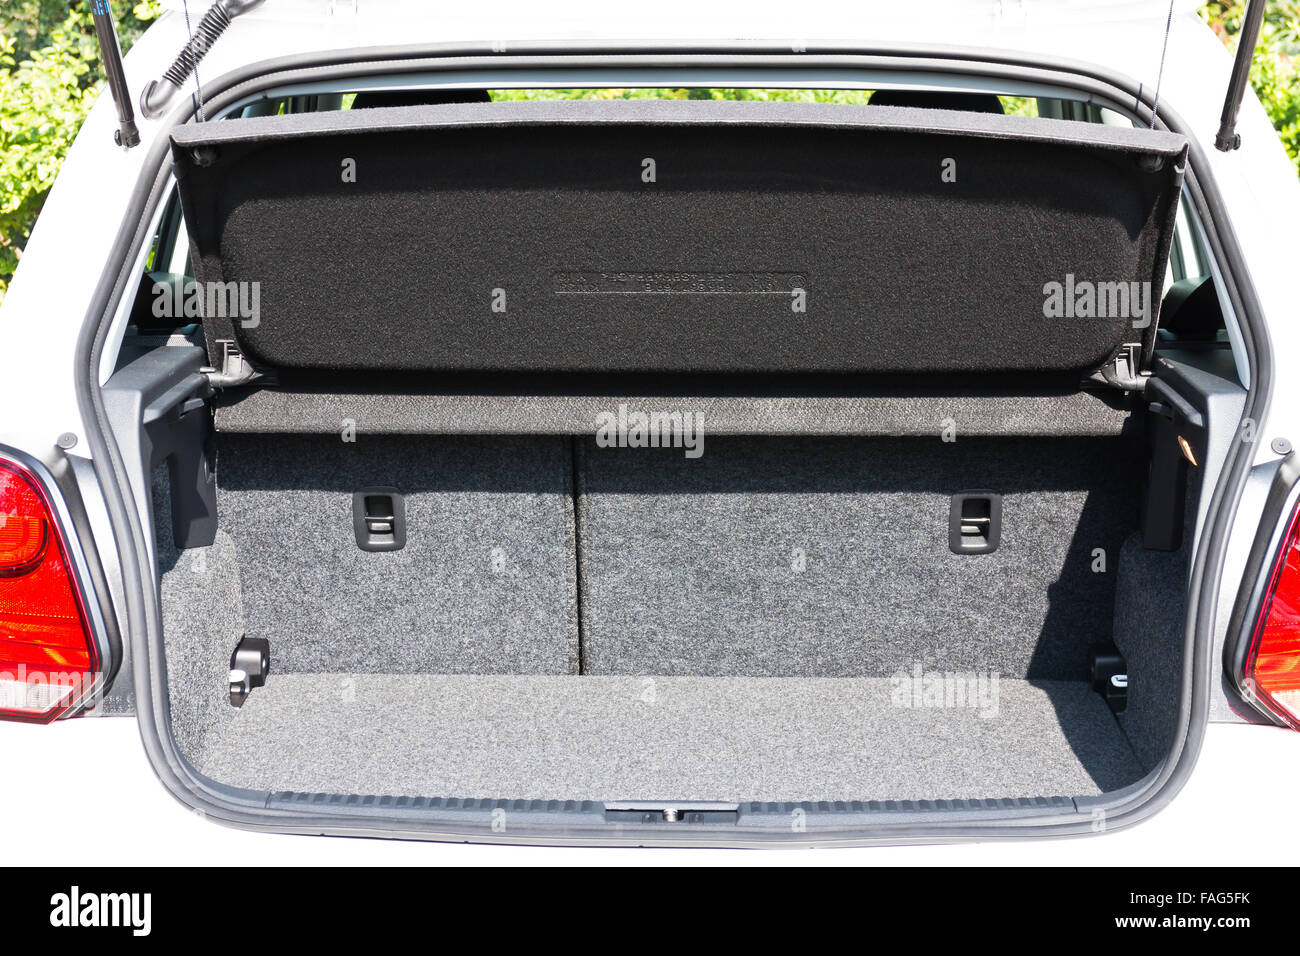 A new Volkswagen Polo 2014 Trunk - Stock Image